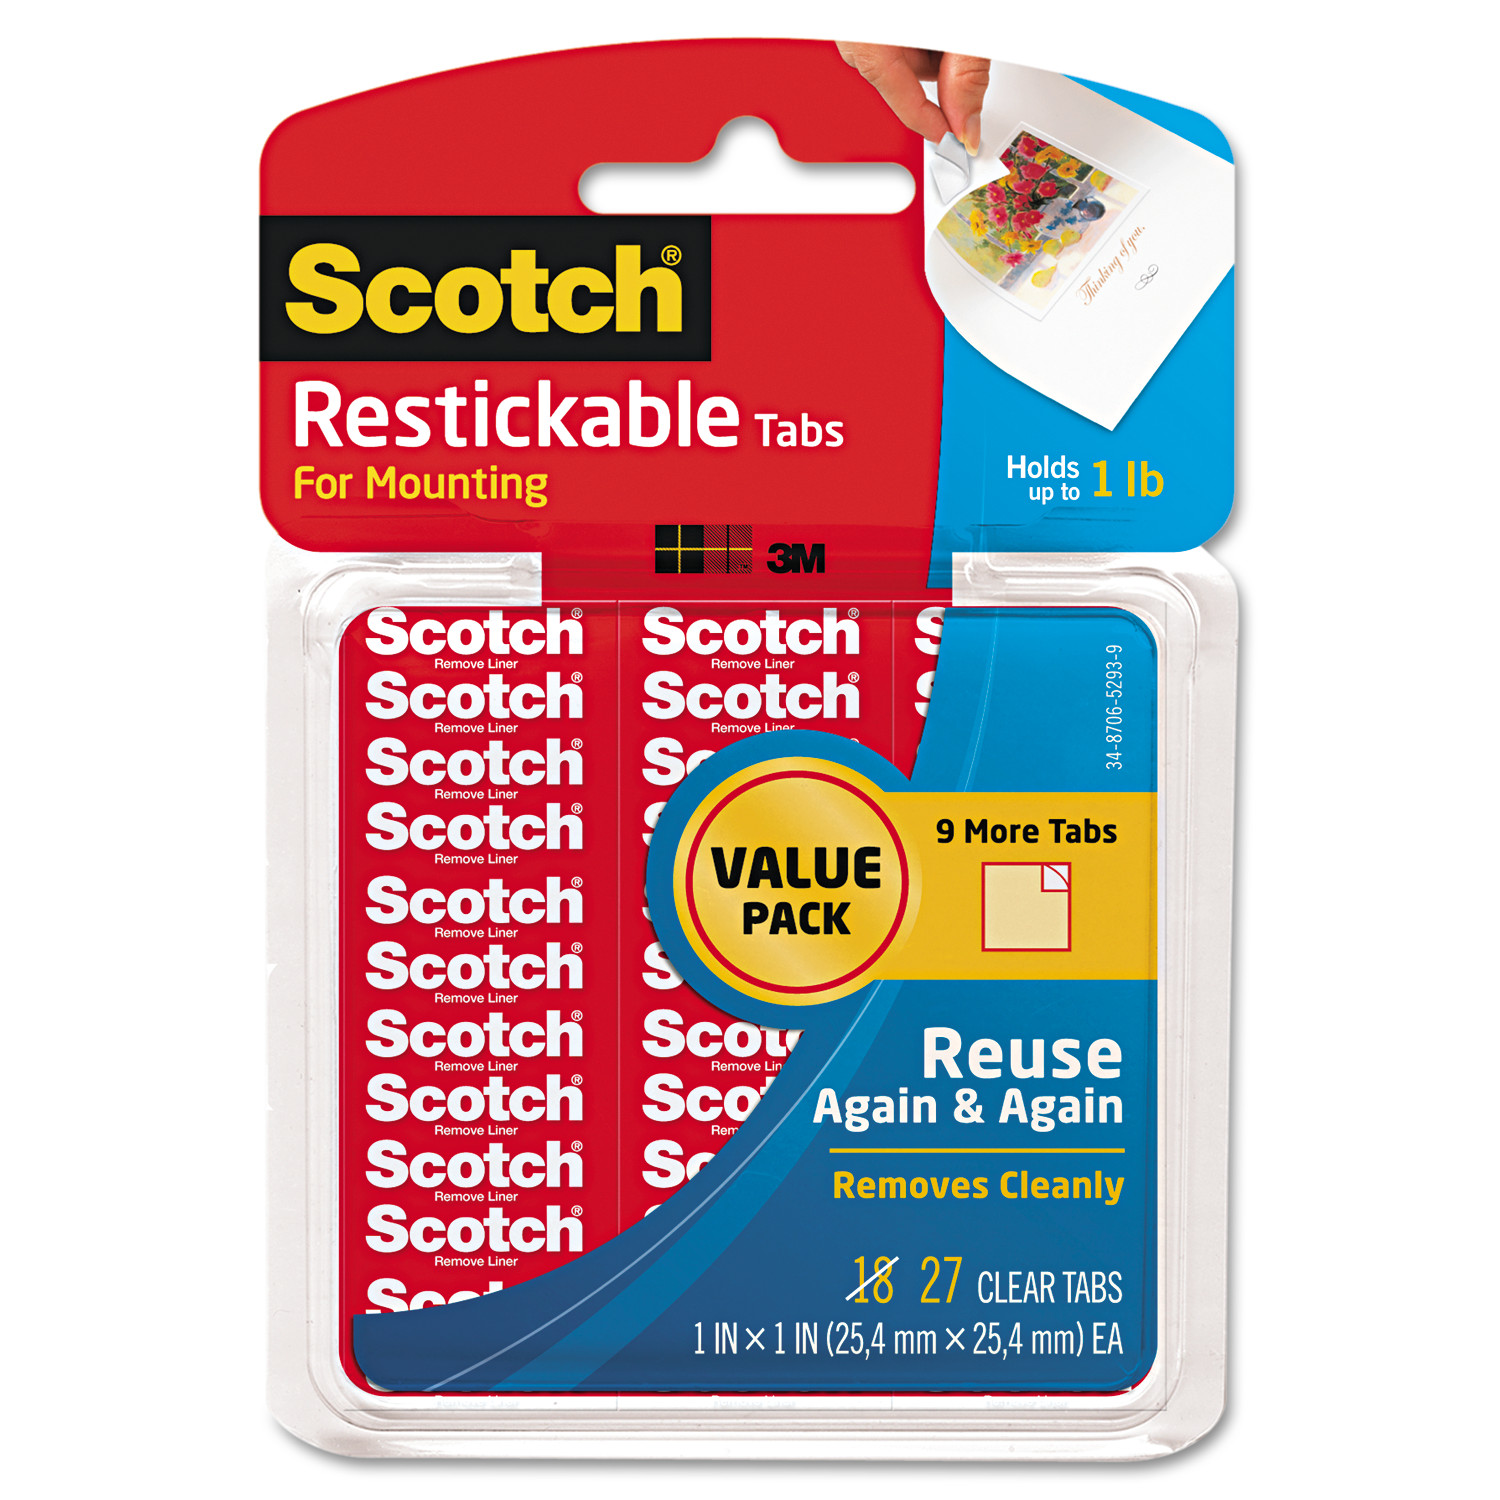 "Scotch Restickable Mounting Tabs, 1"" x 1"", Clear, 27/Pack"